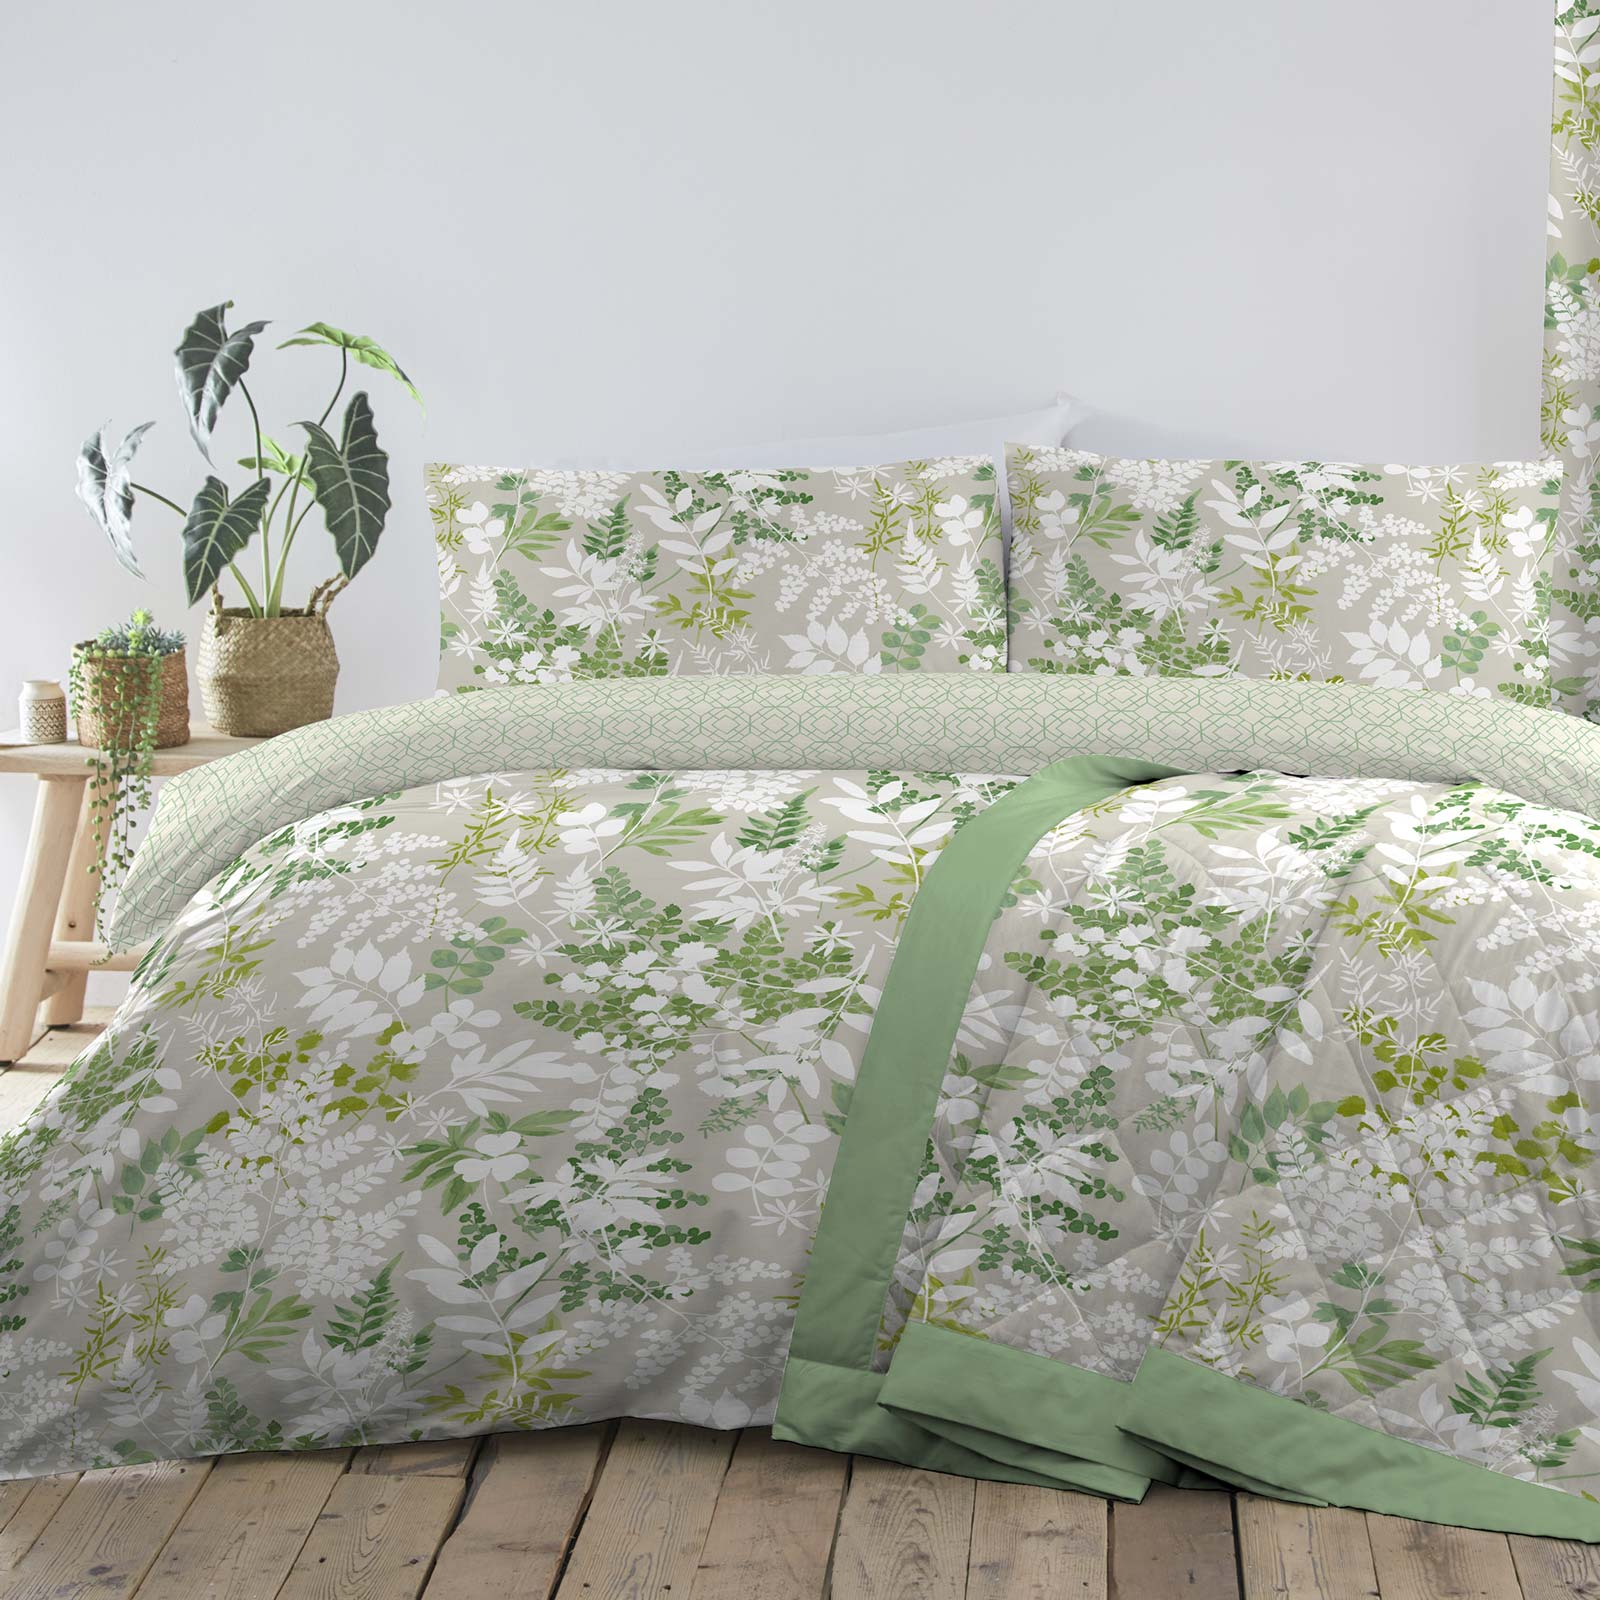 Delamere Botanical Leaf Reversible Green Duvet Cover Set - Single - Ideal Textiles